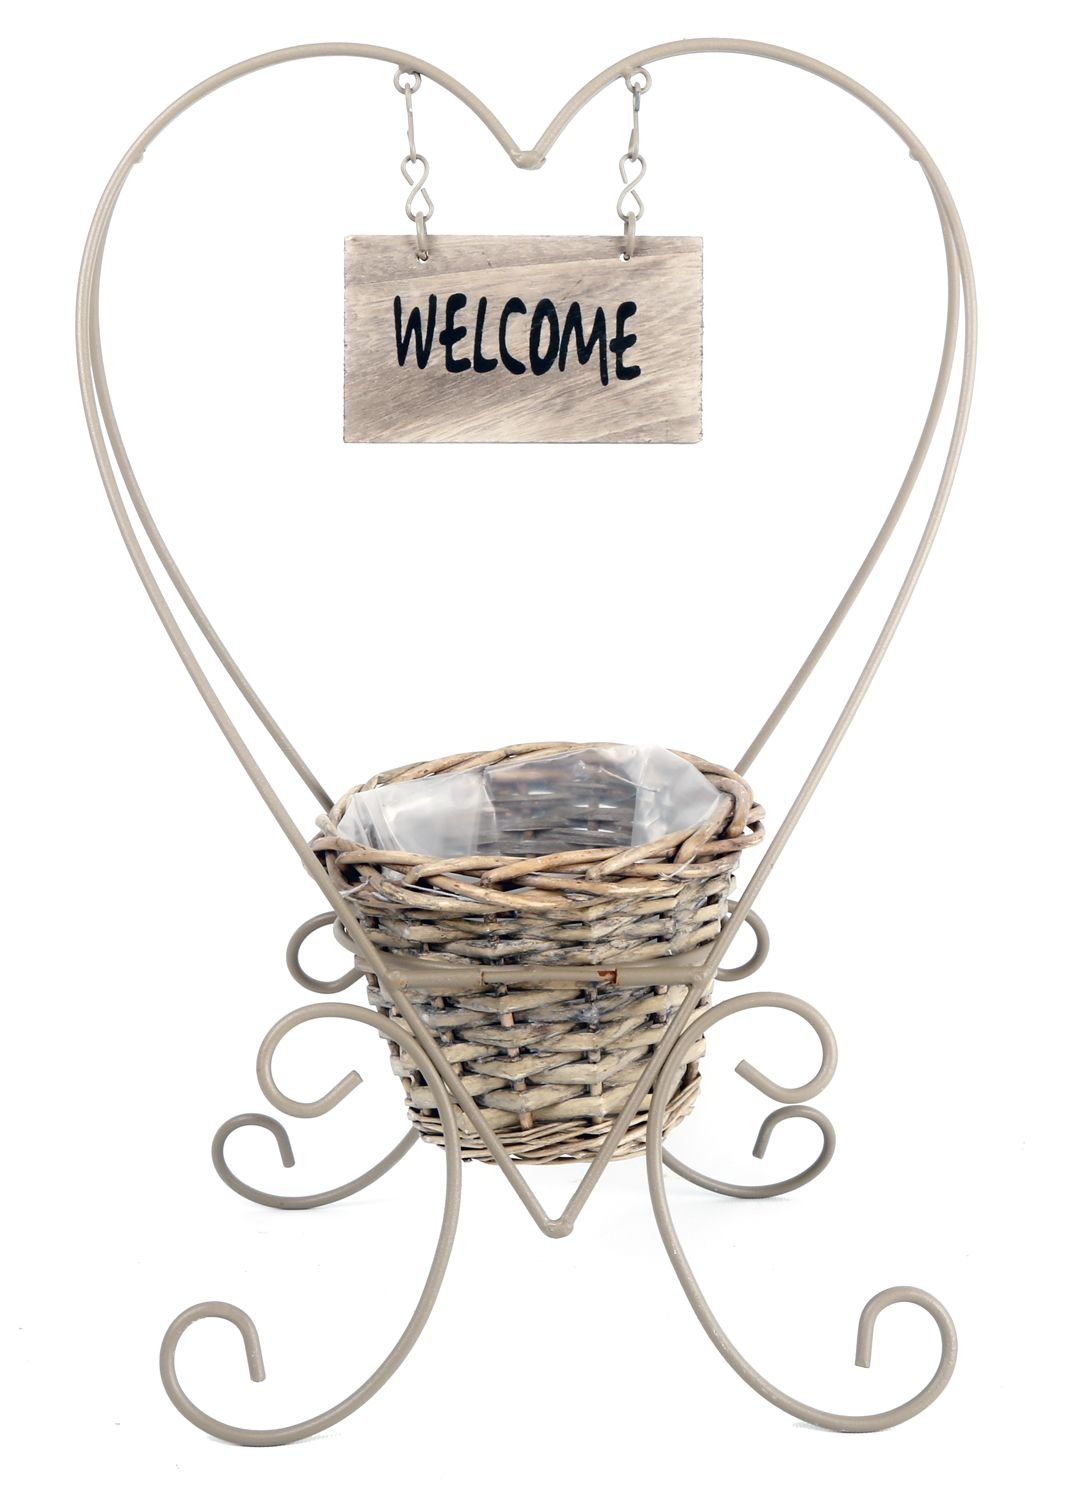 Metal Heart Standing Plant Holder with Basket - Welcome SIL